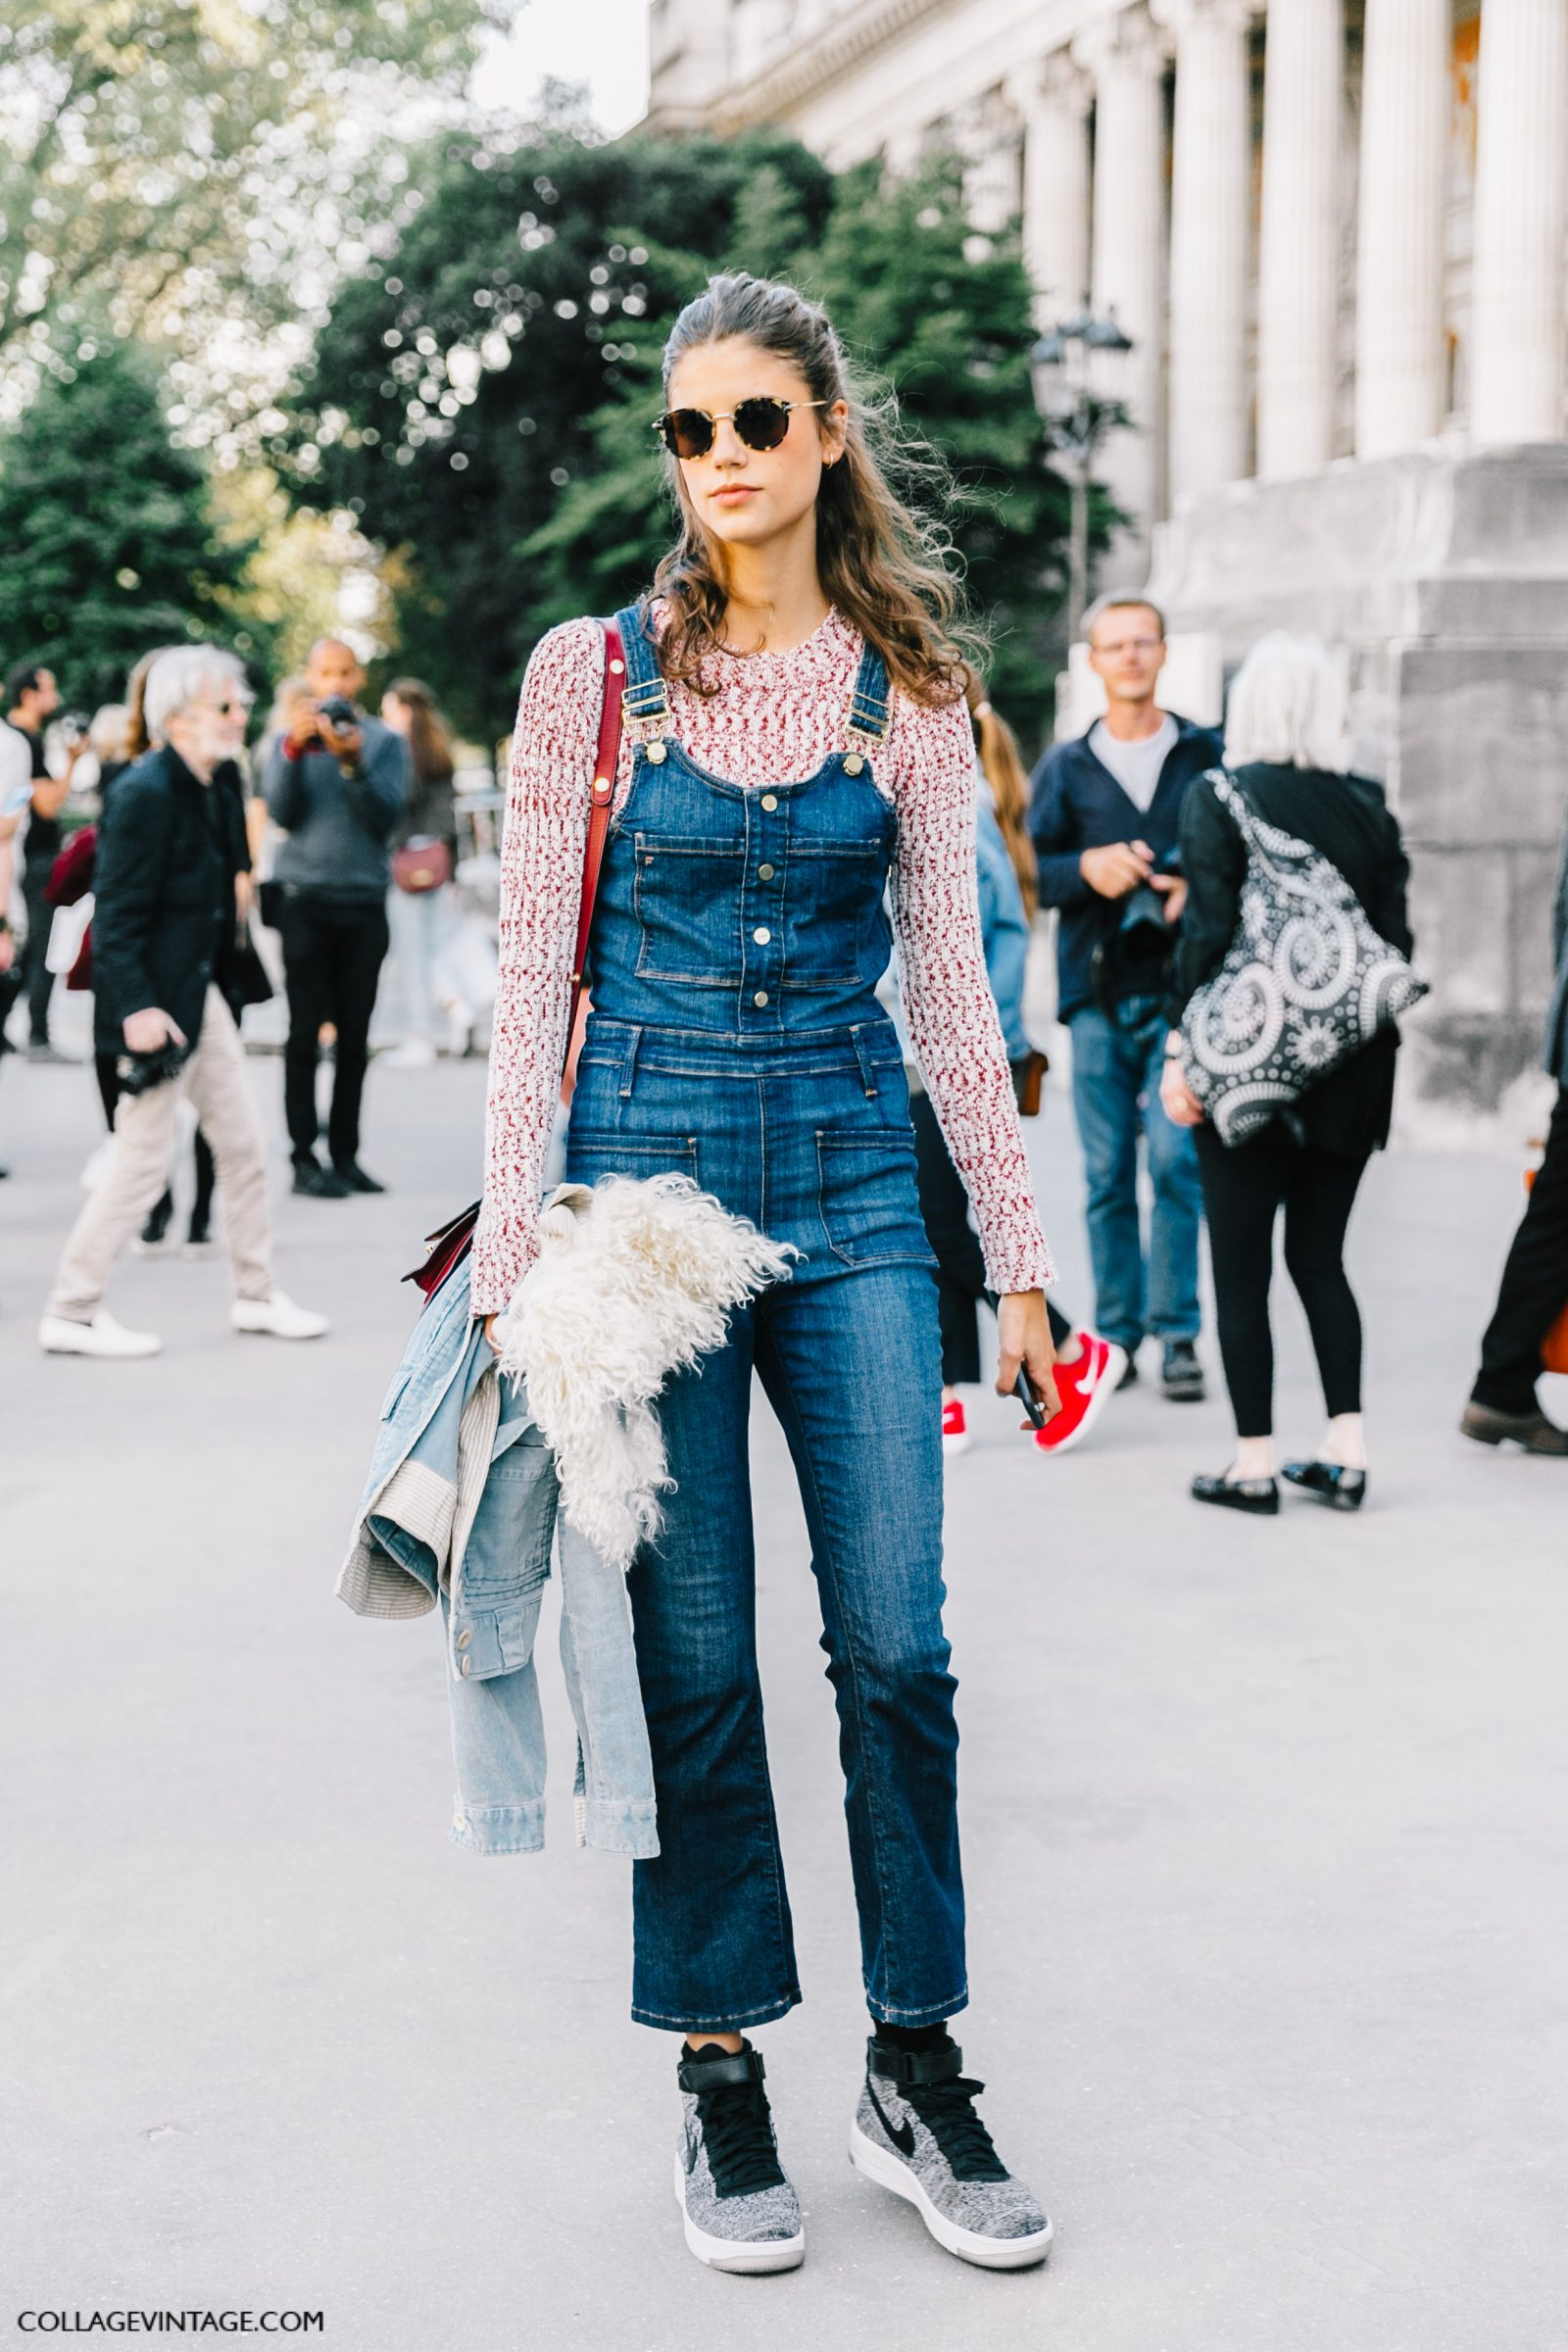 pfw-paris_fashion_week_ss17-street_style-outfits-collage_vintage-chloe-carven-balmain-barbara_bui-207